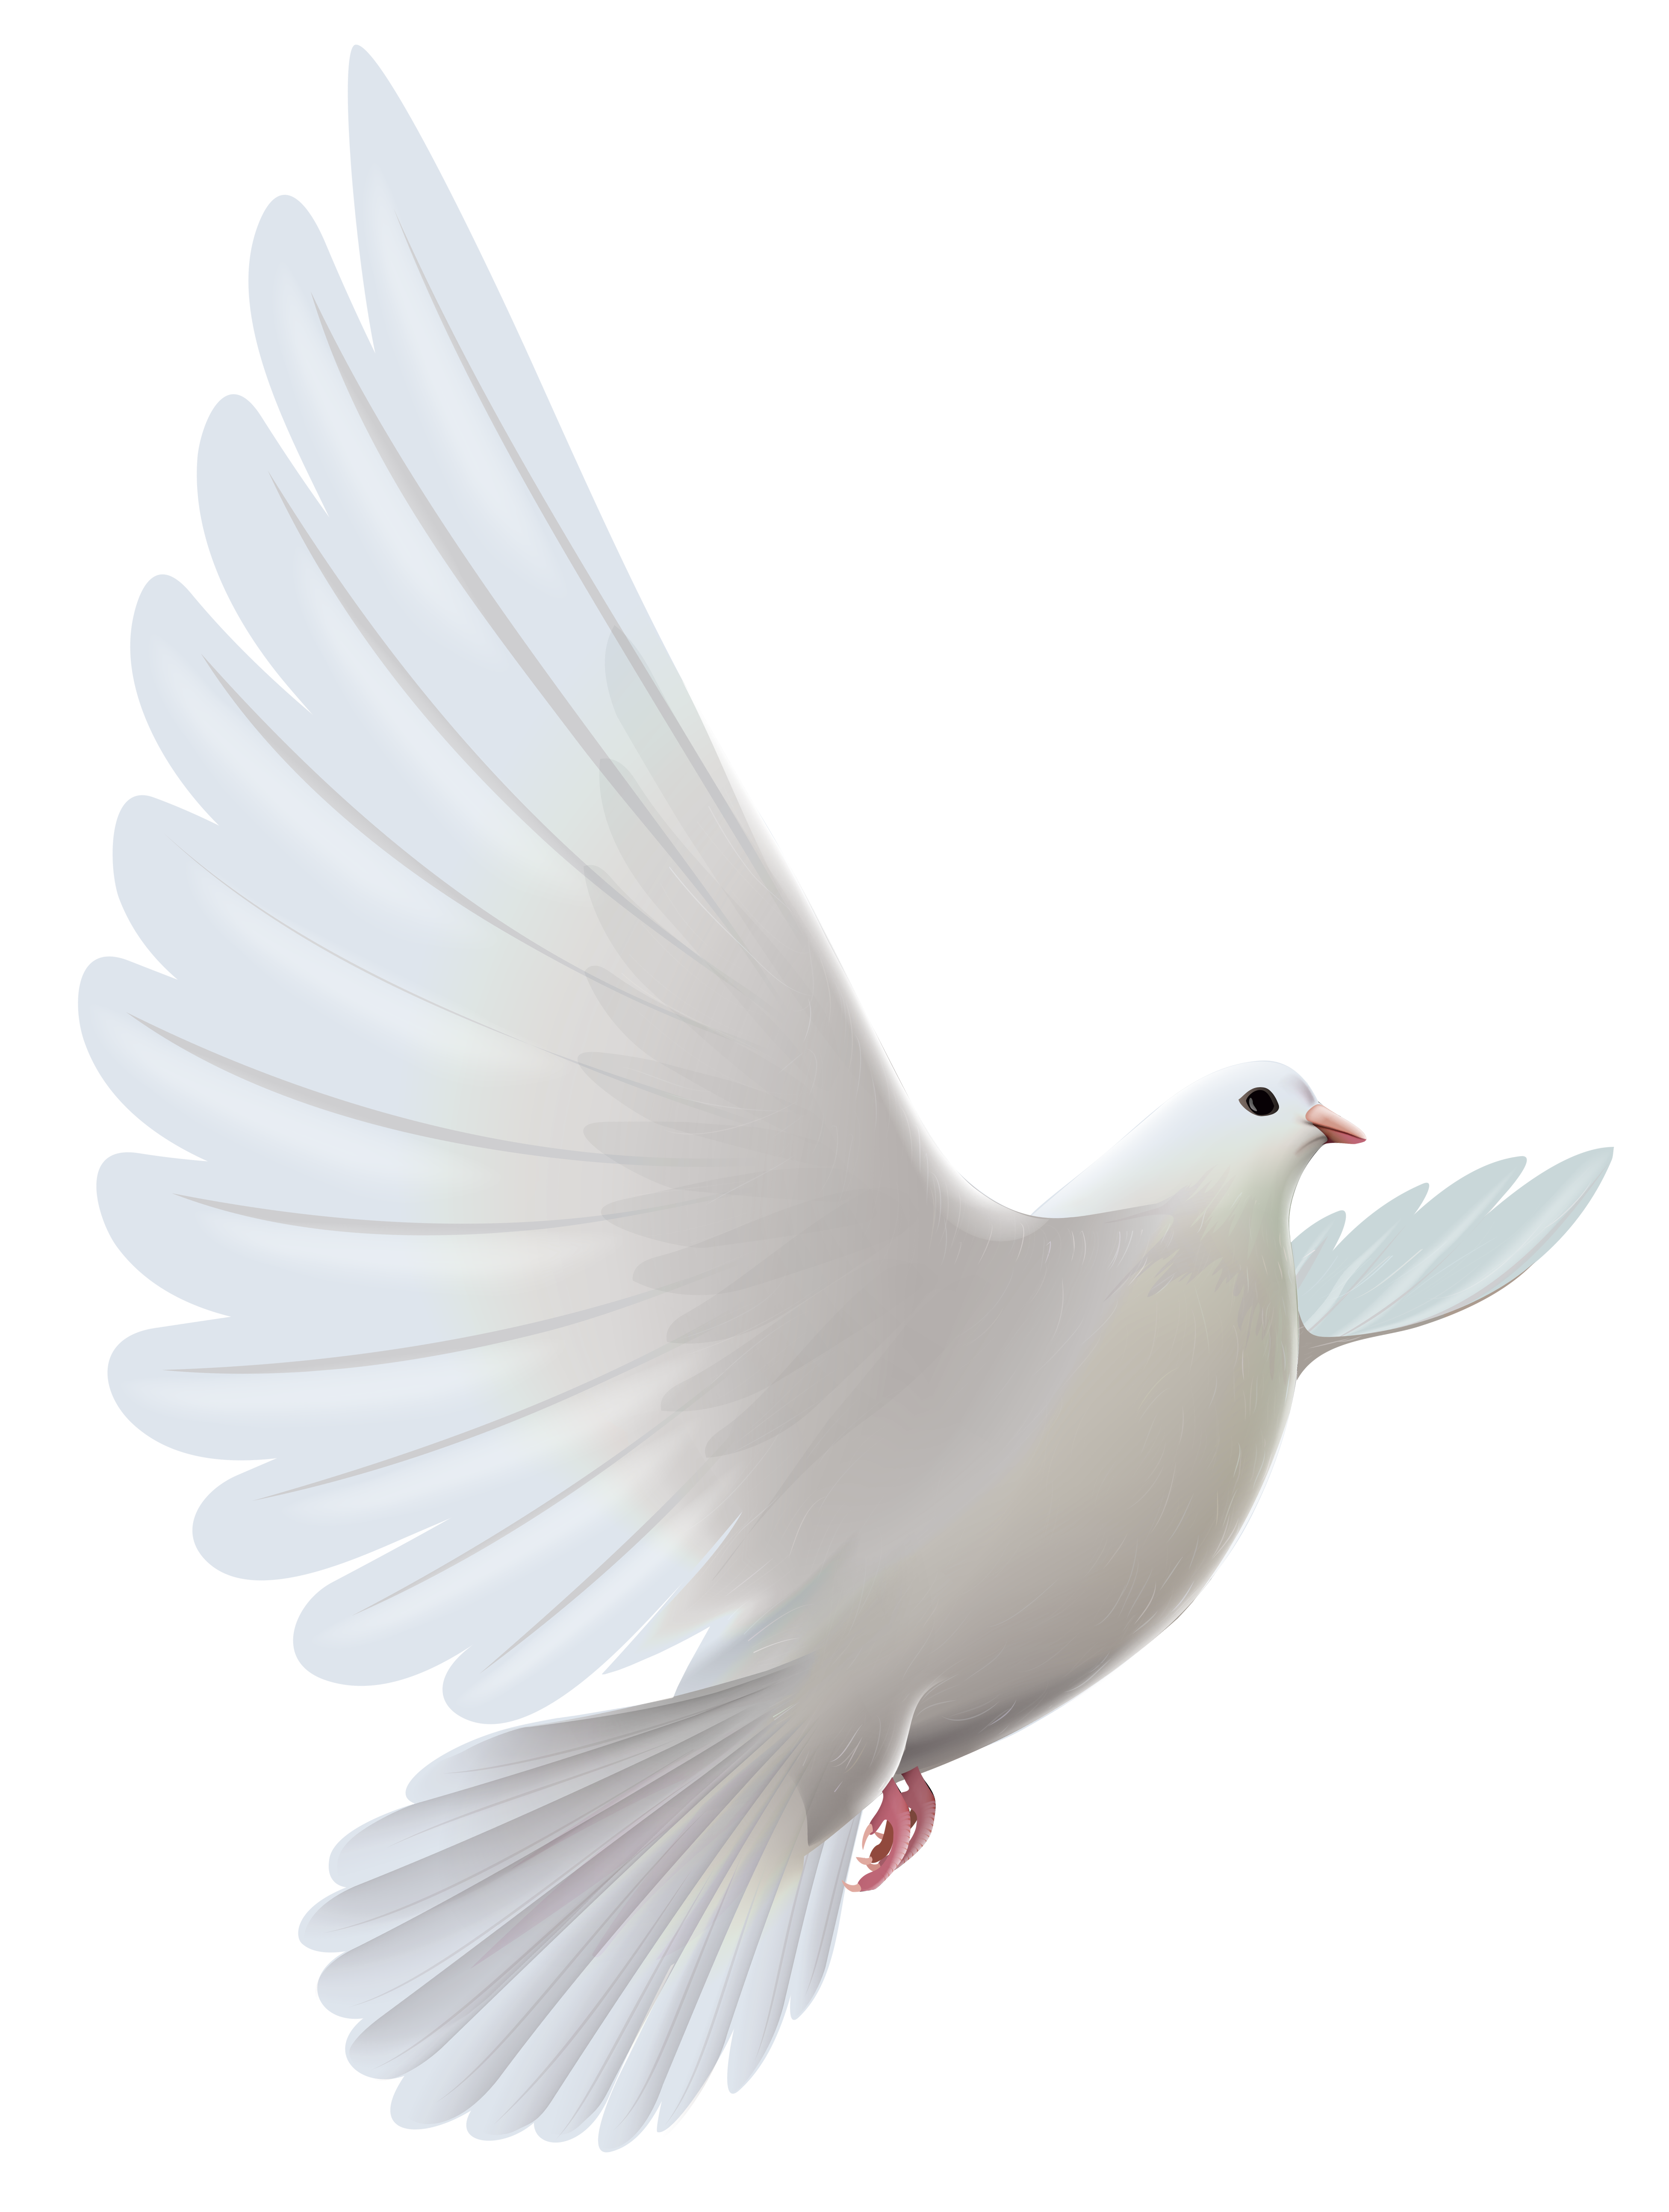 Related image Dove pictures, Dove images, White doves